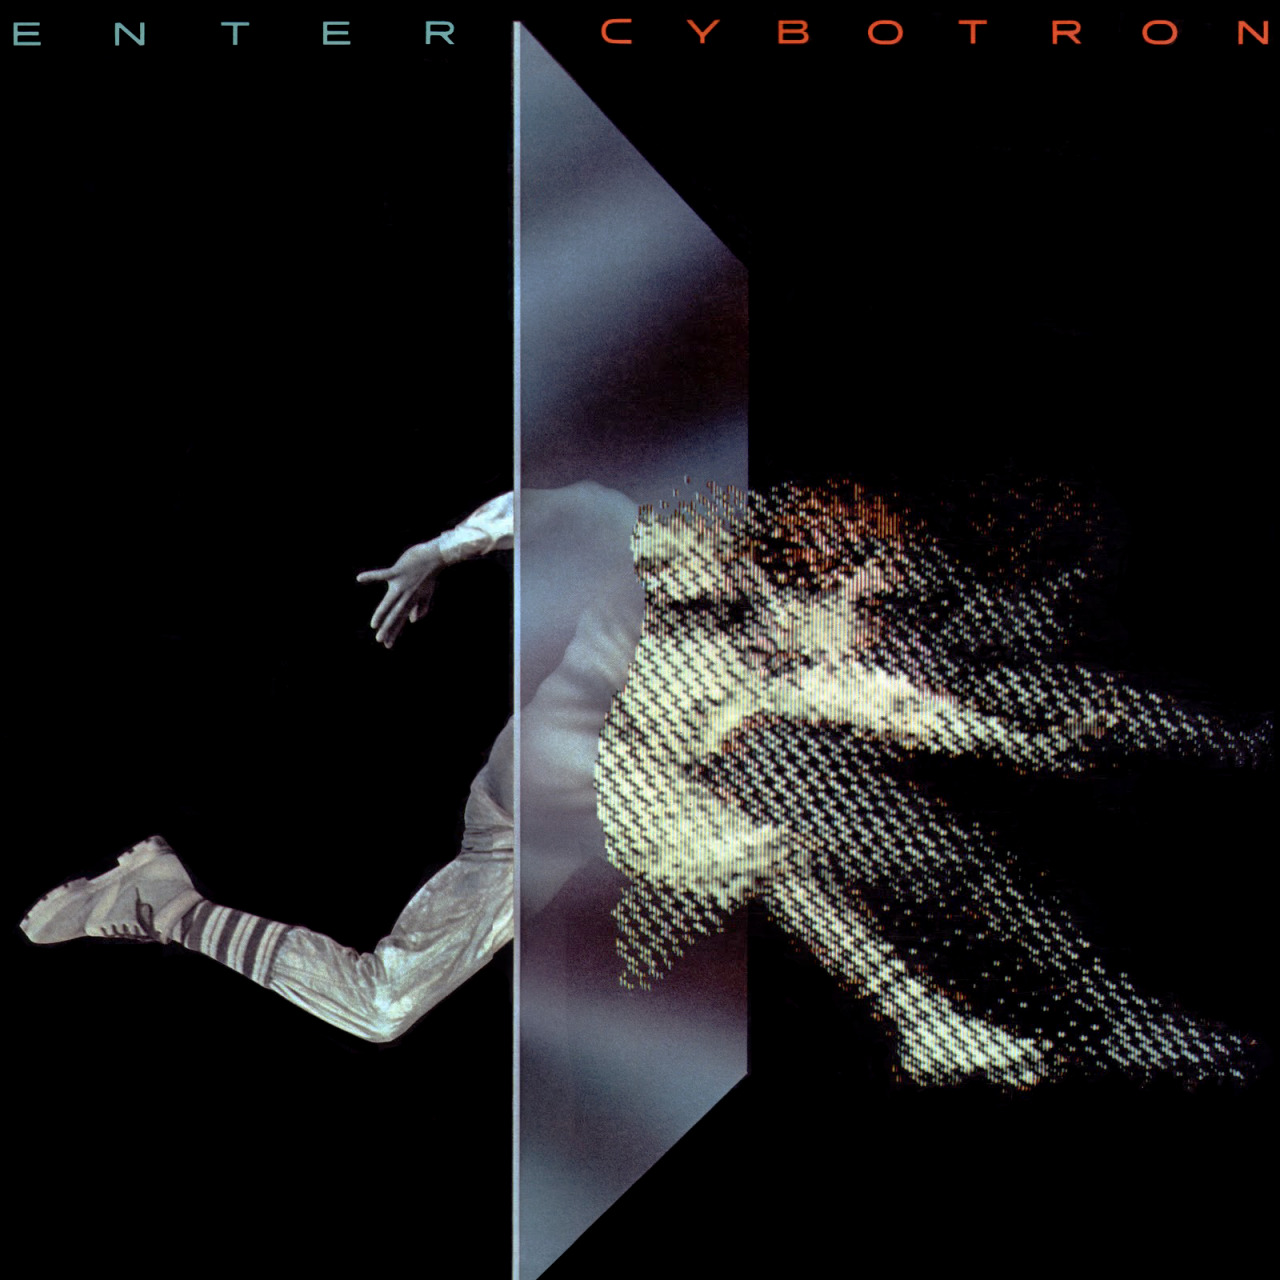 Cybotron 'Enter', Fantasy, 1983. Art direction by Phil Carroll, cover illustration by Jamie Putnam.